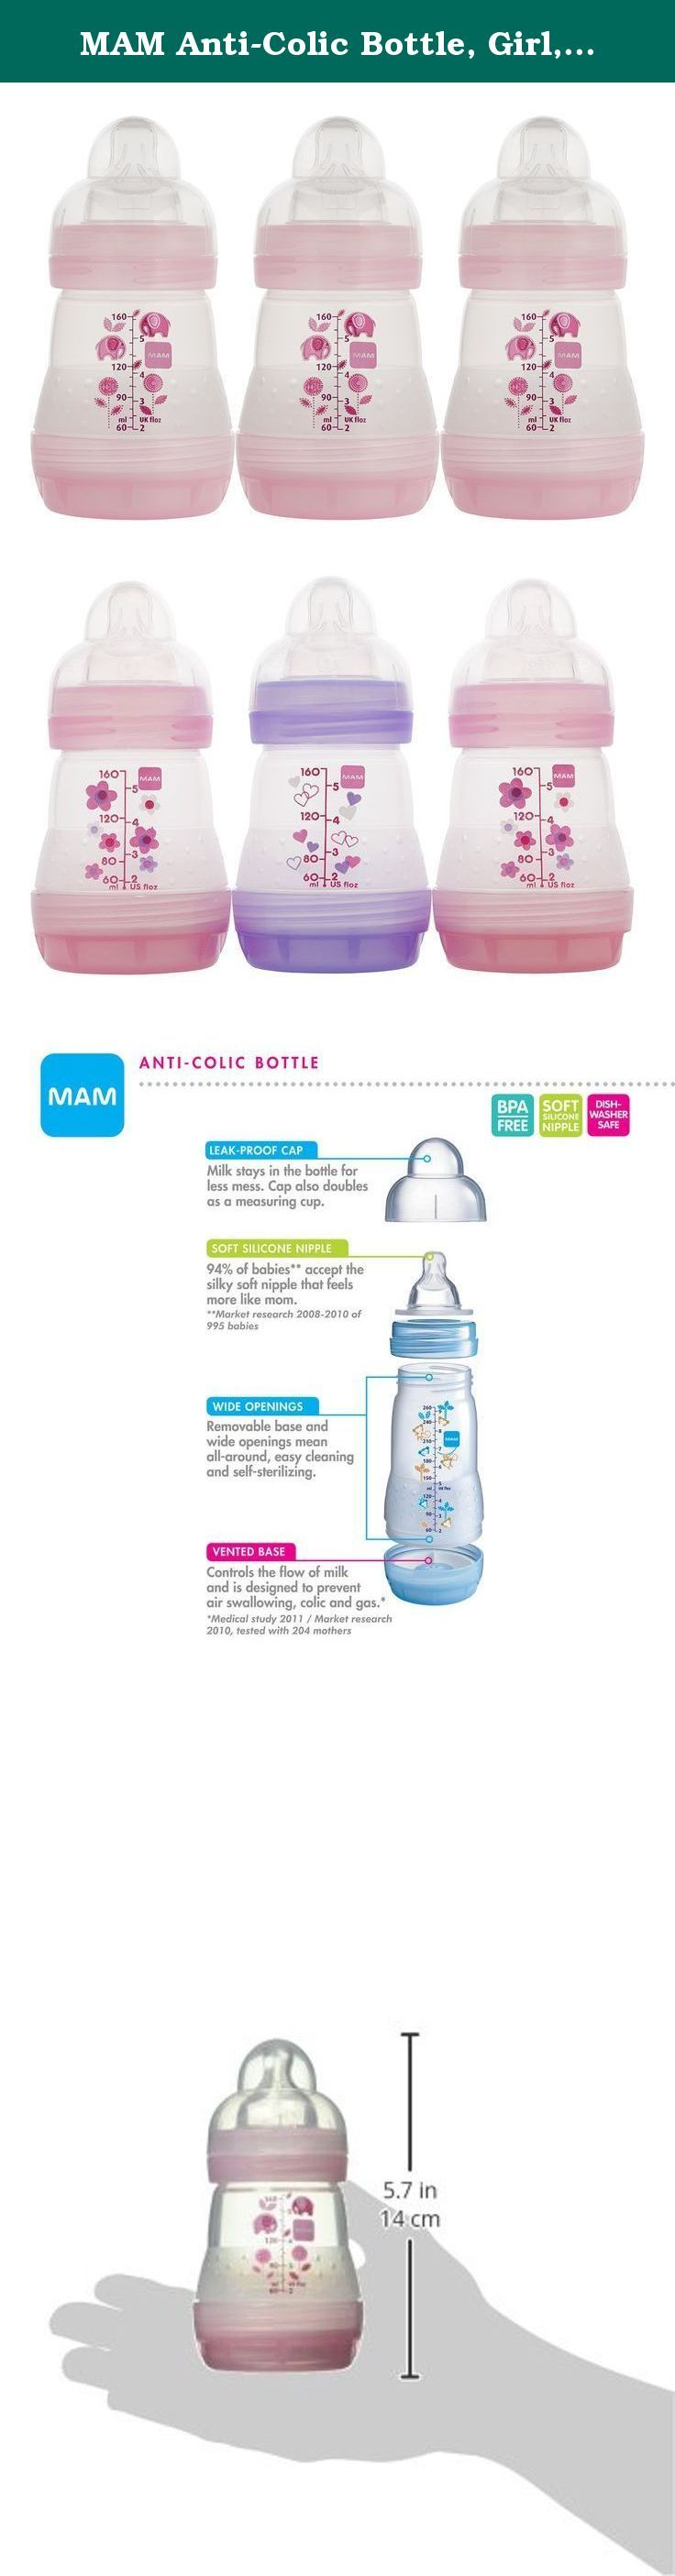 MAM Anti-Colic Bottle, Girl, 5 Ounces, 3-Count. The MAM Ulti vent wide mouth transition bottle system is designed to be as close to breast feeding as possible in a reusable bottle. All MAM Bottles are constructed of Bisphenol A free materials. The orthodontic nipple is made of ultra soft silicone and encourages baby to use a natural suckling action similar to breast feeding. The Ulti vent valve is sensitive enough to ensure baby a constant, air free flow of liquid. The removable bottom…